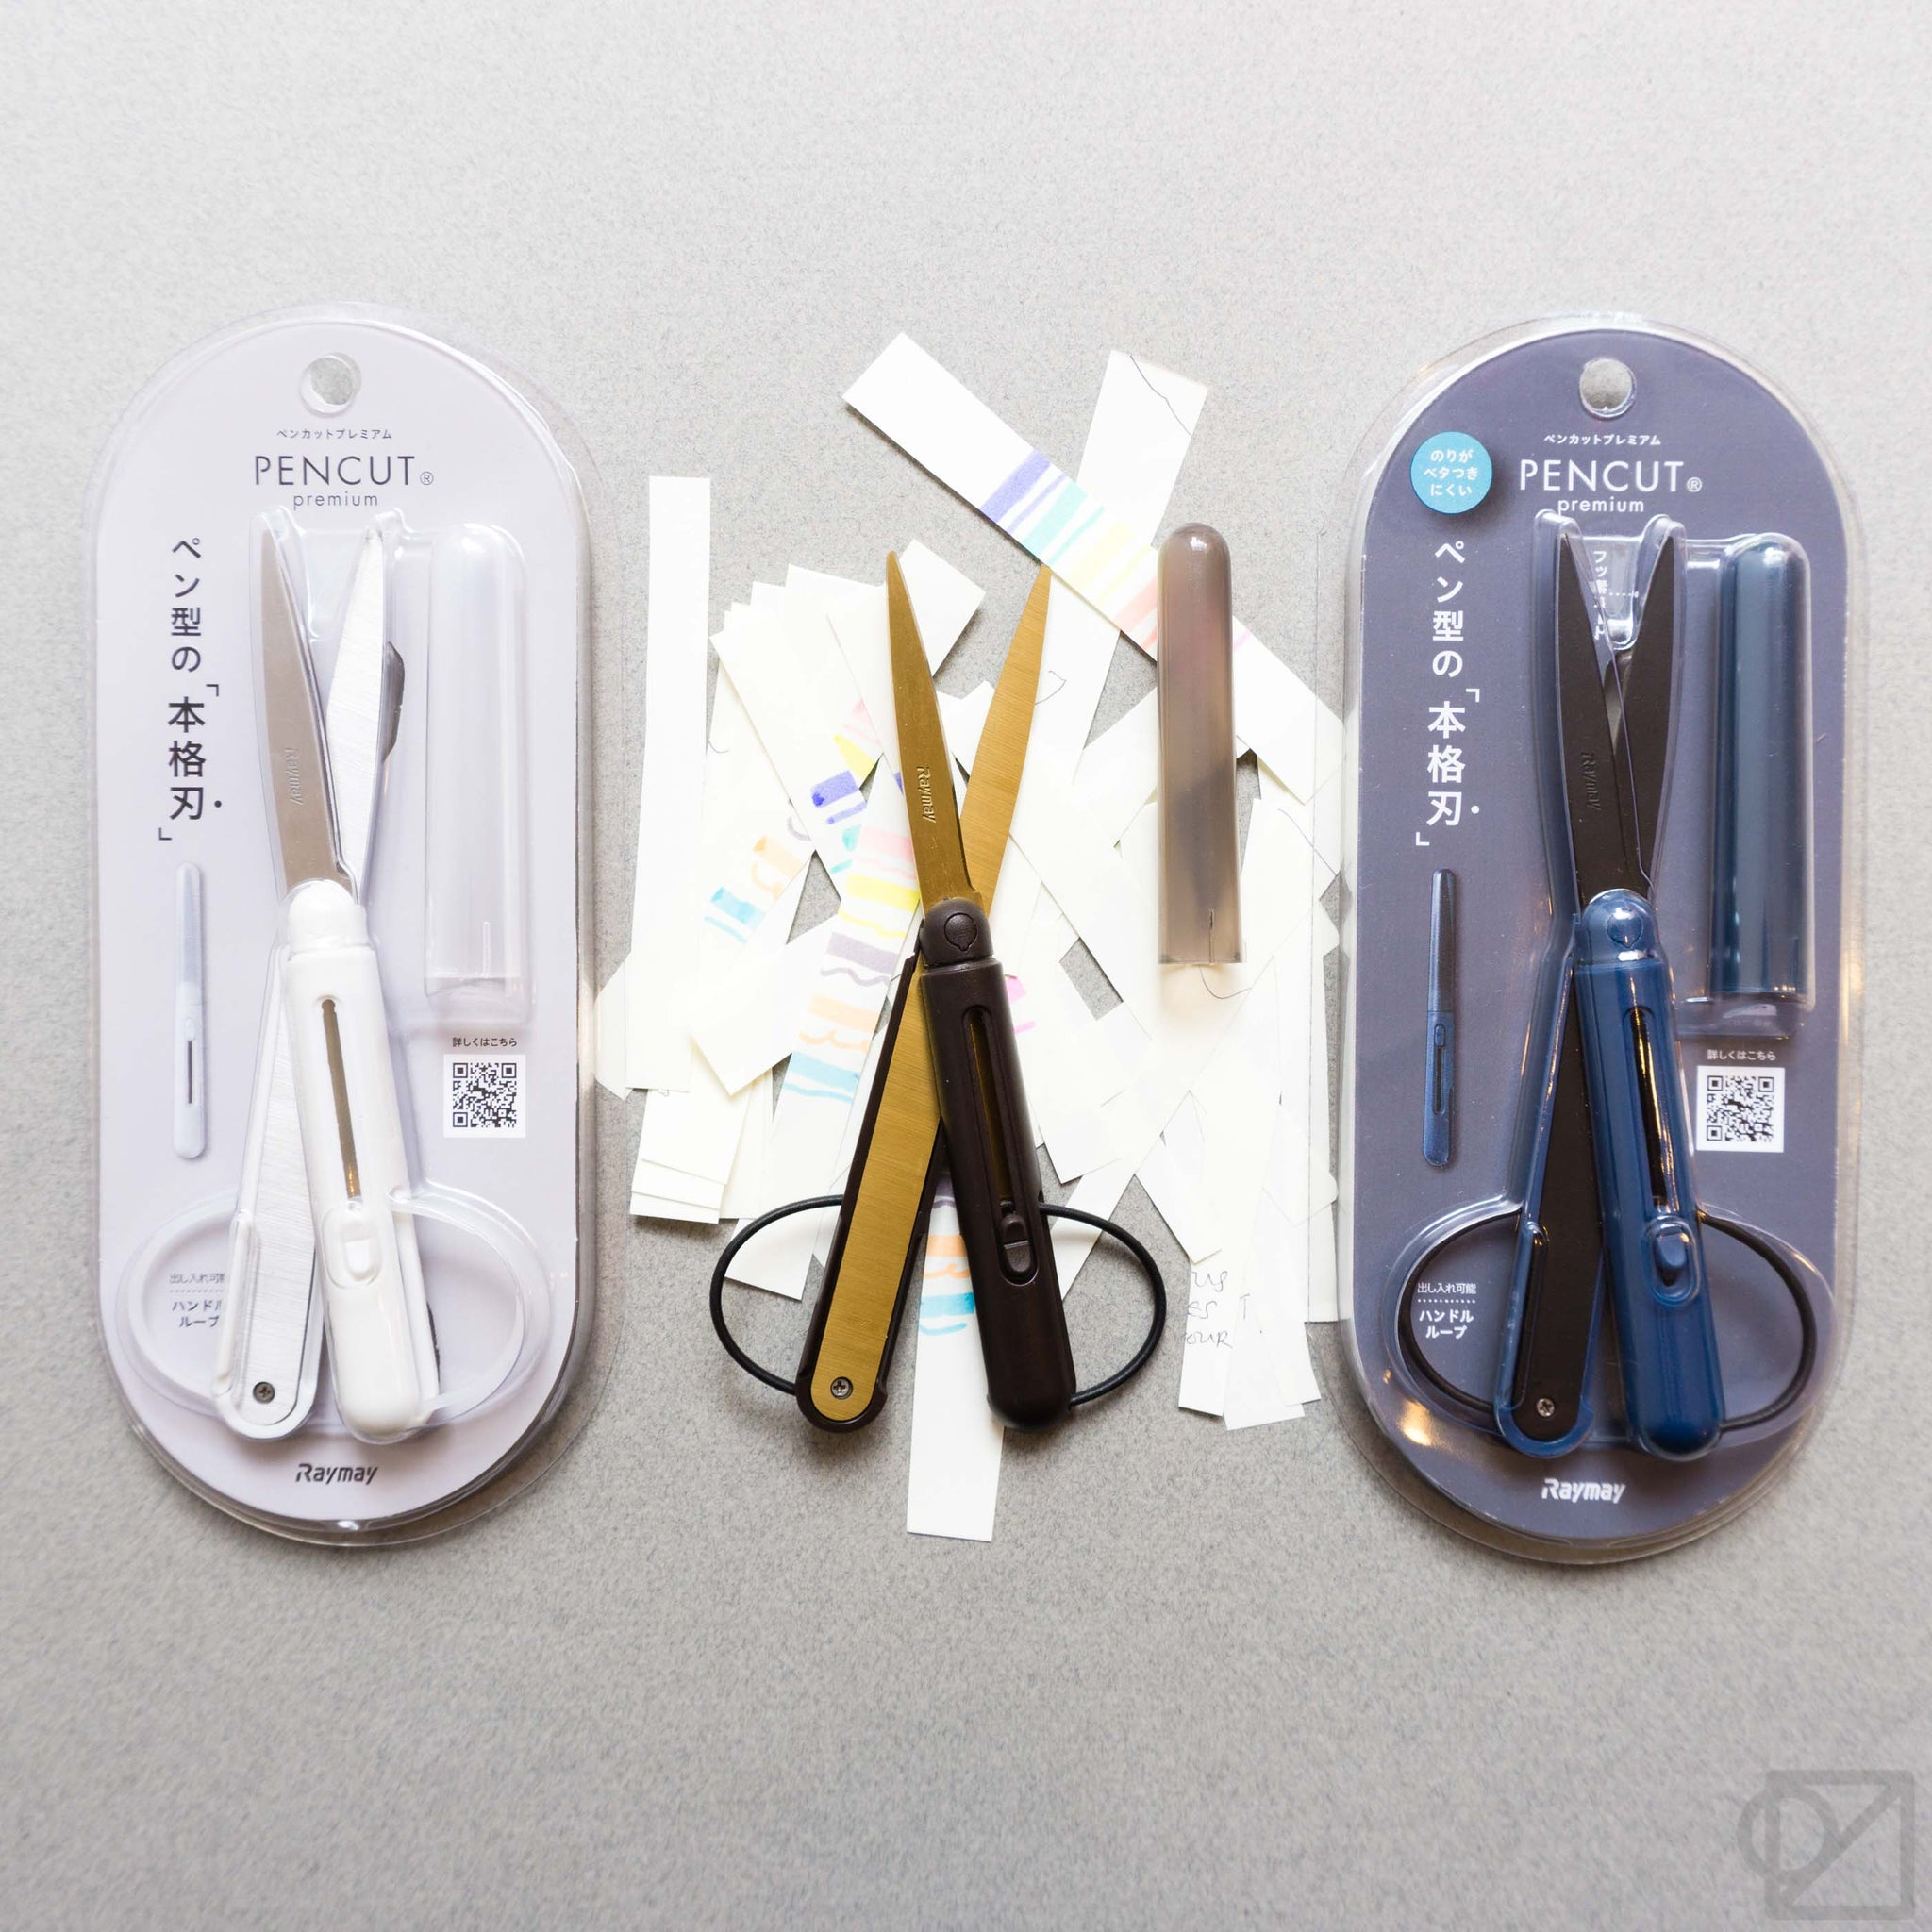 Pencut Premium Portable Scissors